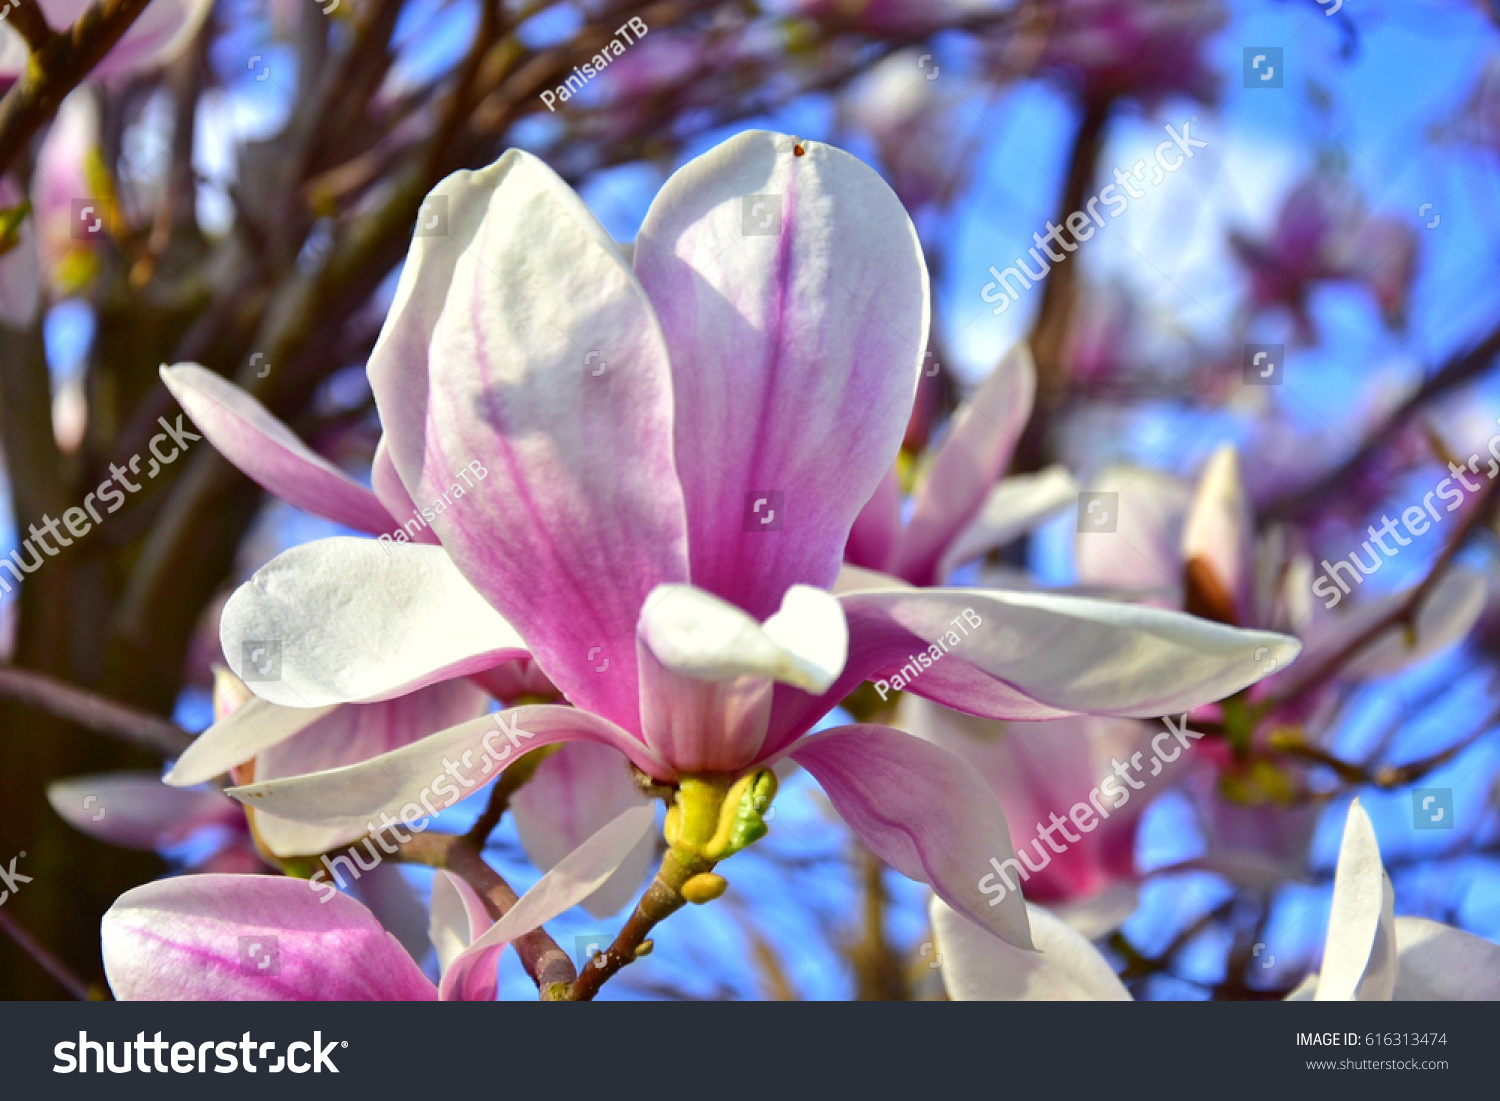 Magnolia soulangeana saucer magnolia pink flower stock photo edit magnolia soulangeana saucer magnolia pink flower it is a beautiful deciduous tree mightylinksfo